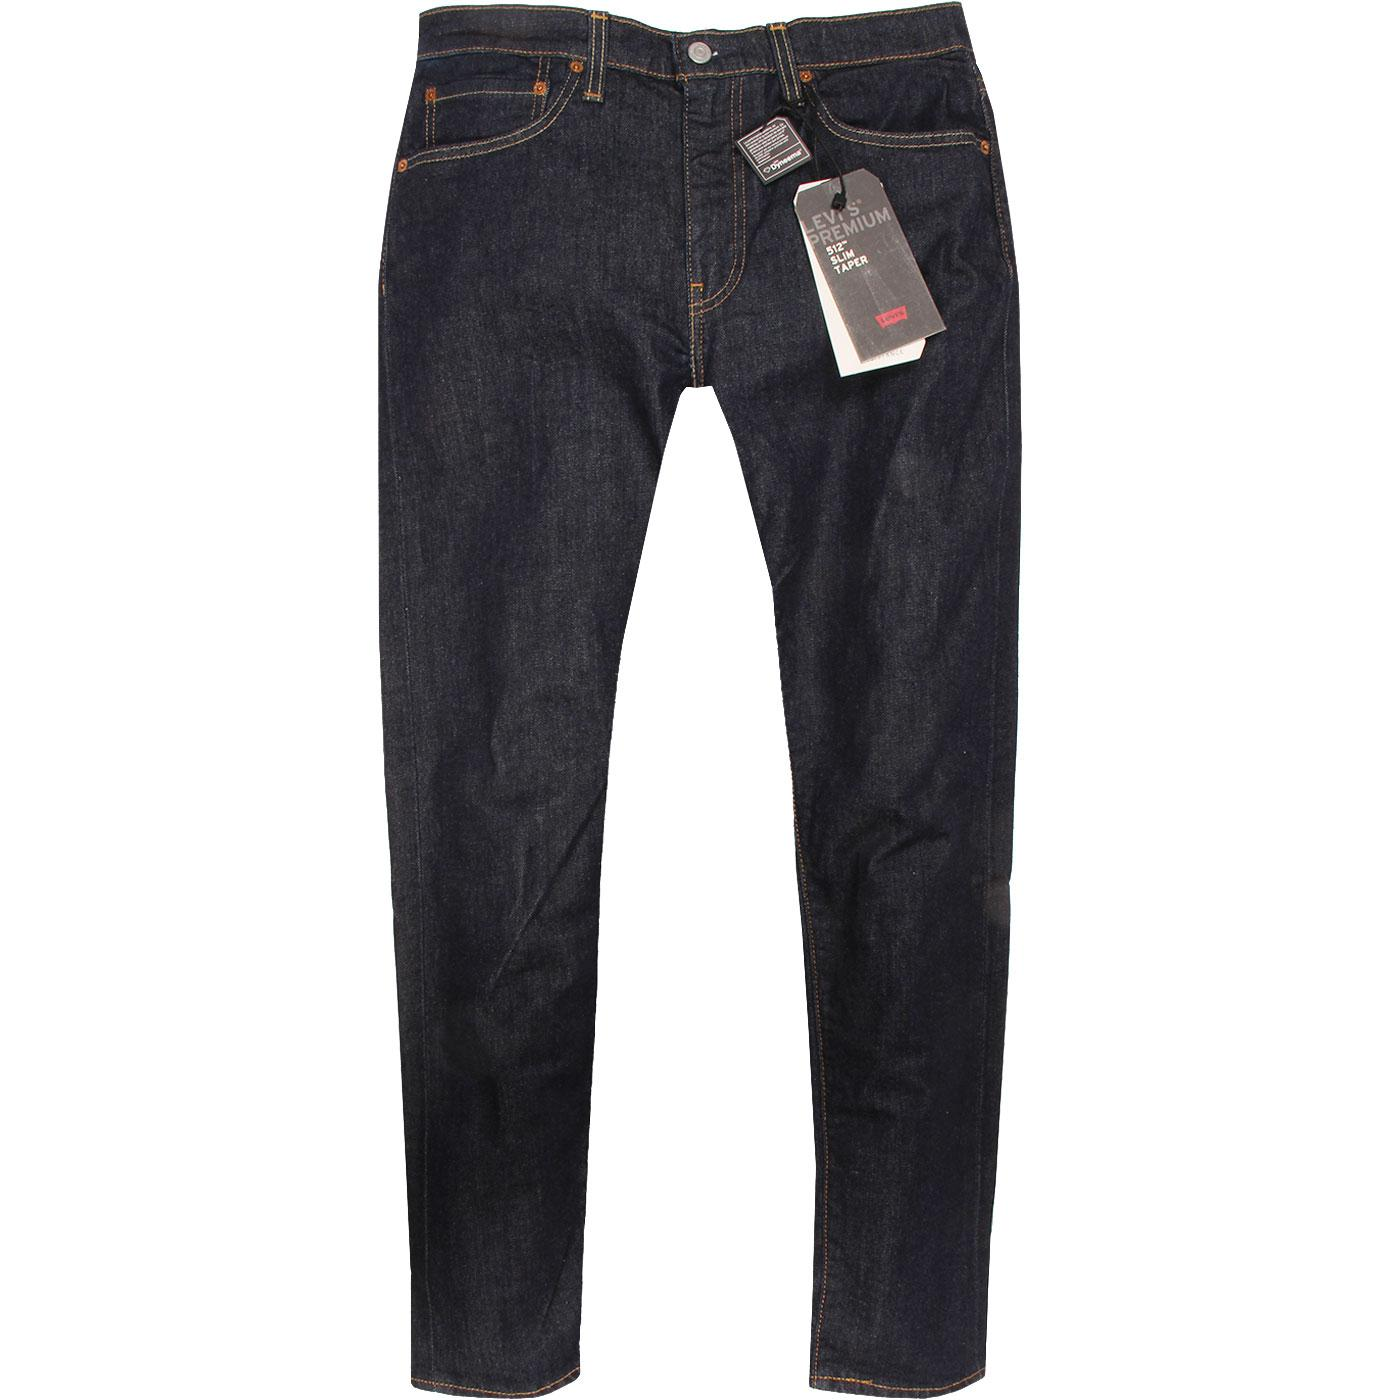 LEVI'S 512 Mod Slim Taper Denim Jeans ROCK COD